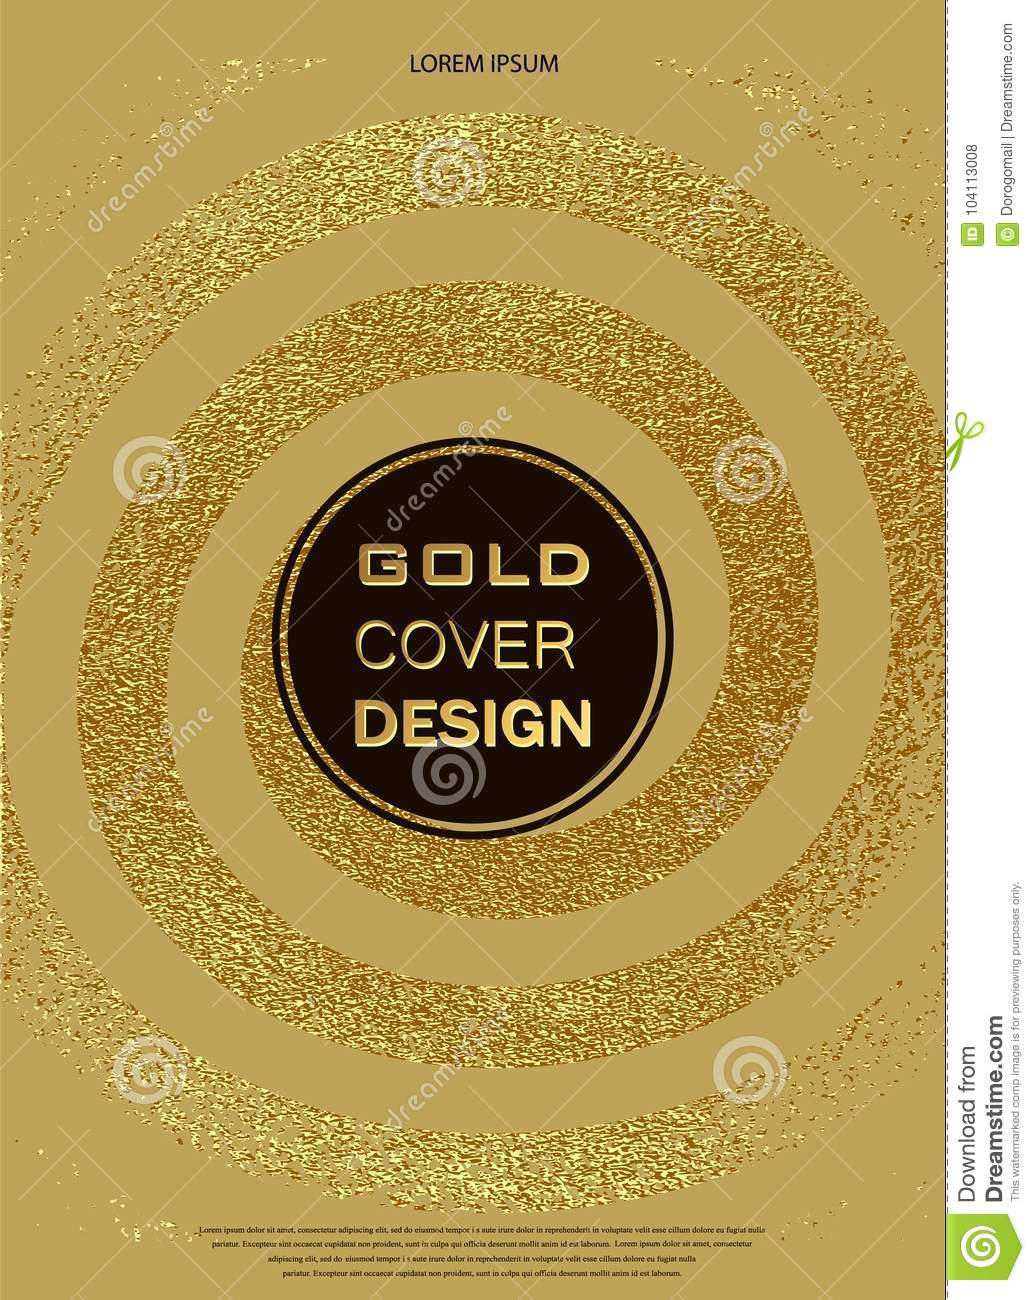 gold glitter sparkles design pattern for brochures invitation for new year wedding birthday flyers logo banners abstract modern backgrounds patina